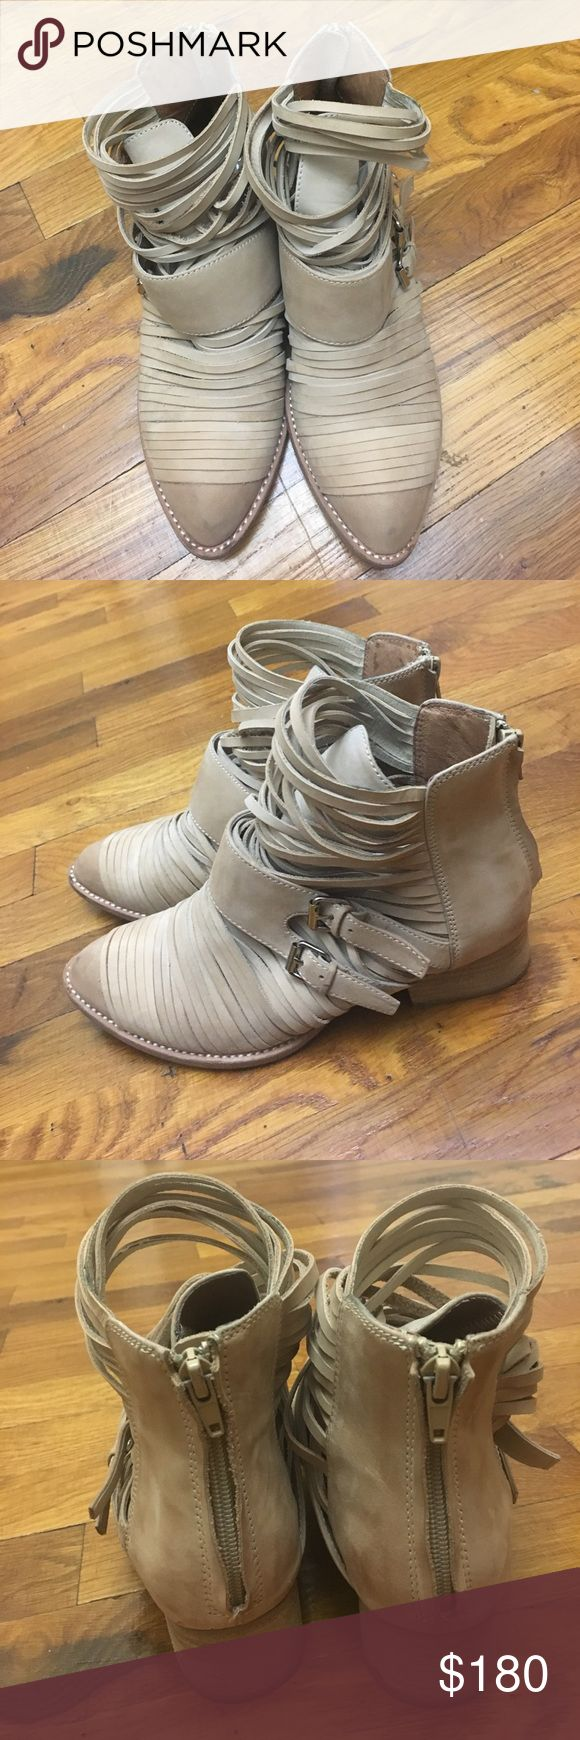 Jeffrey Campbell beige boots 8.5 Worn twice Retail $265 plus tax. Please send reasonable offers Jeffrey Campbell Shoes Ankle Boots & Booties